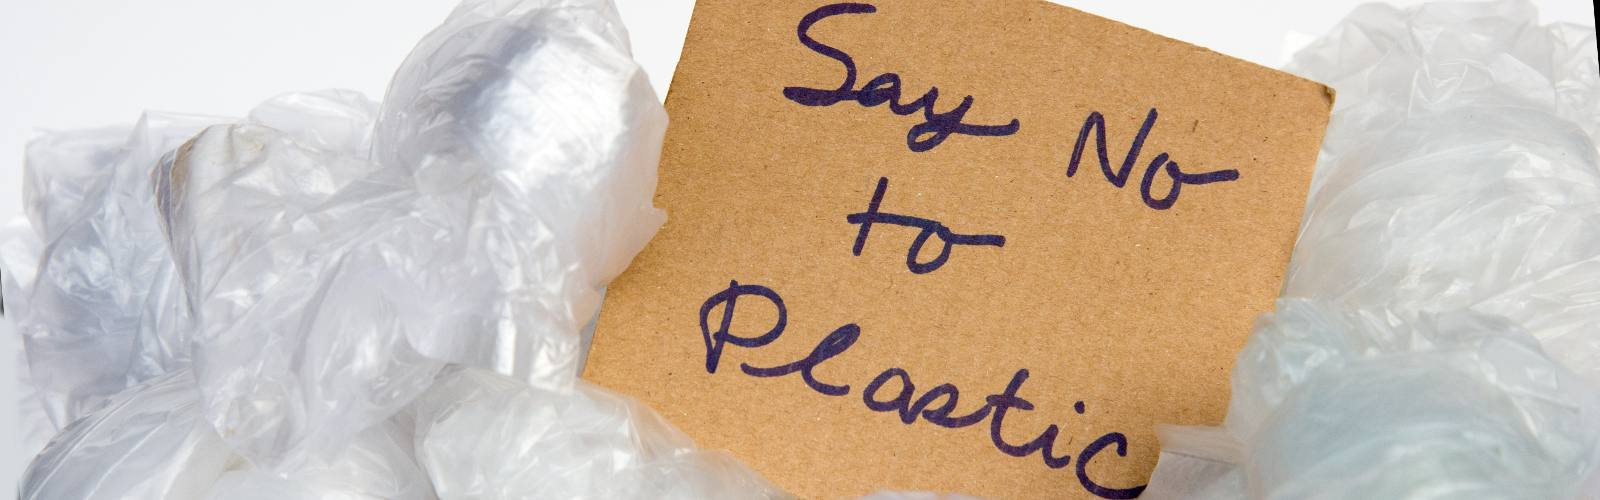 Can you help phase out plastic packaging?